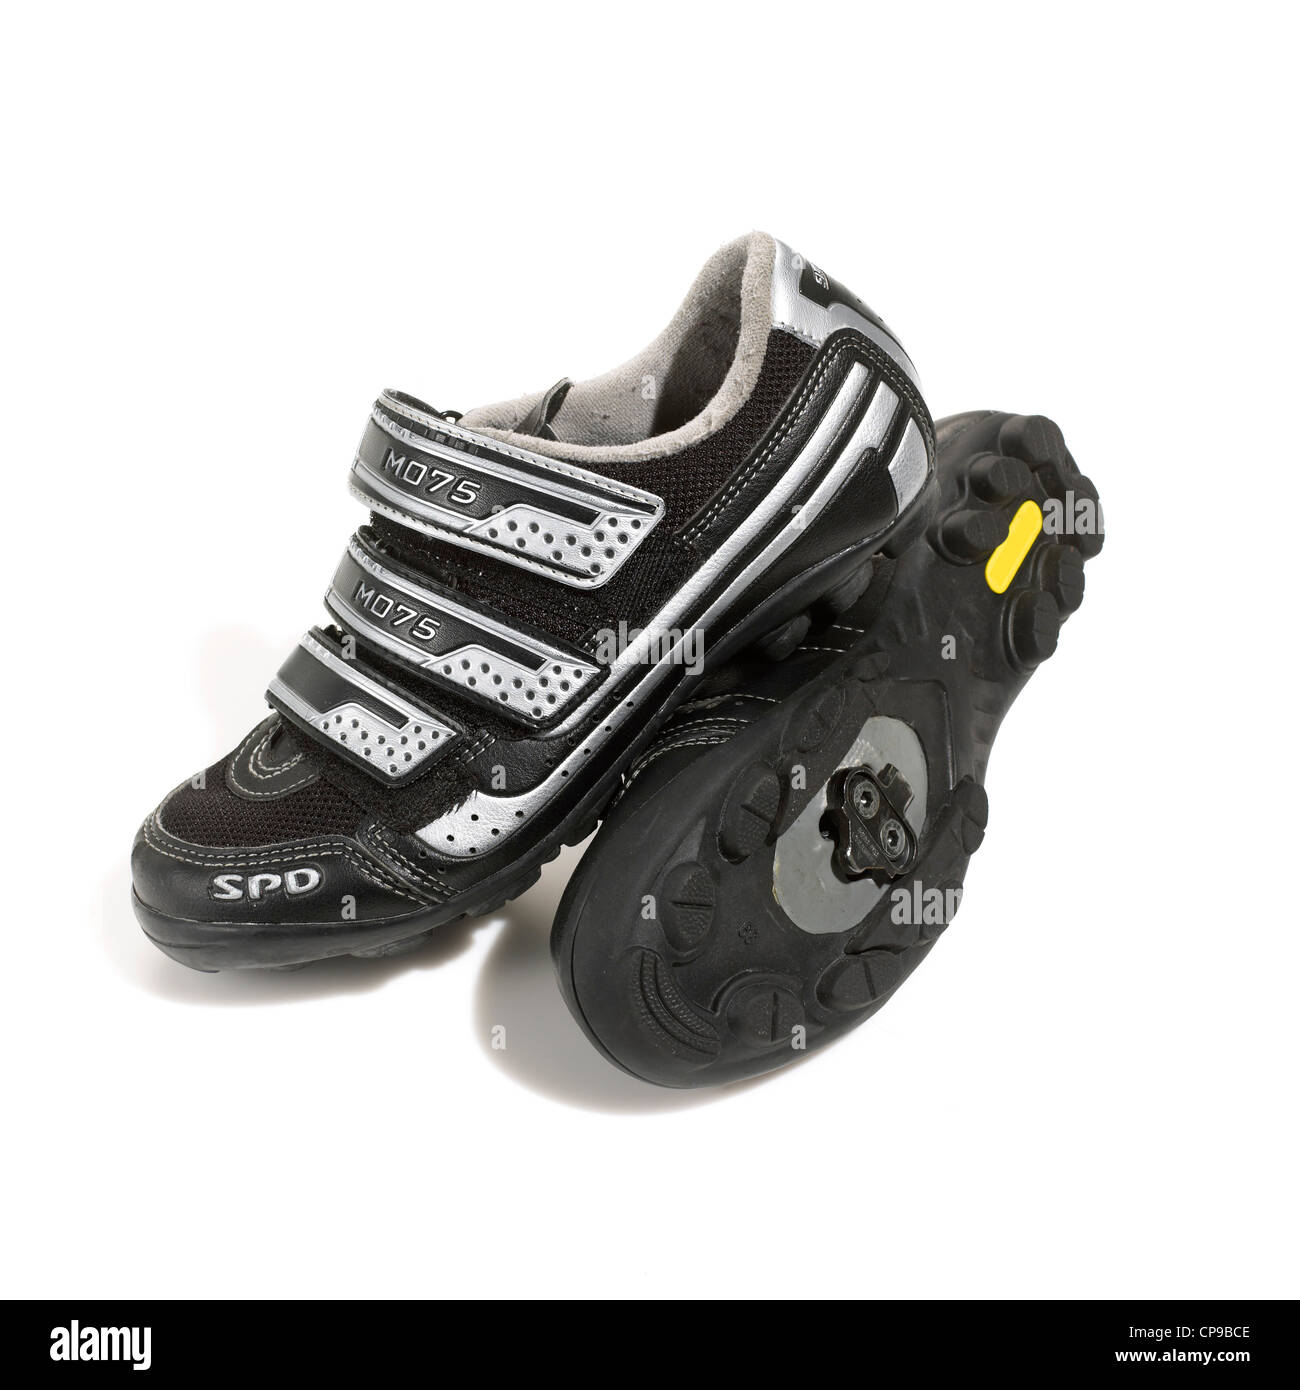 Athletic Spinning Shoes with Velcro - Stock Image